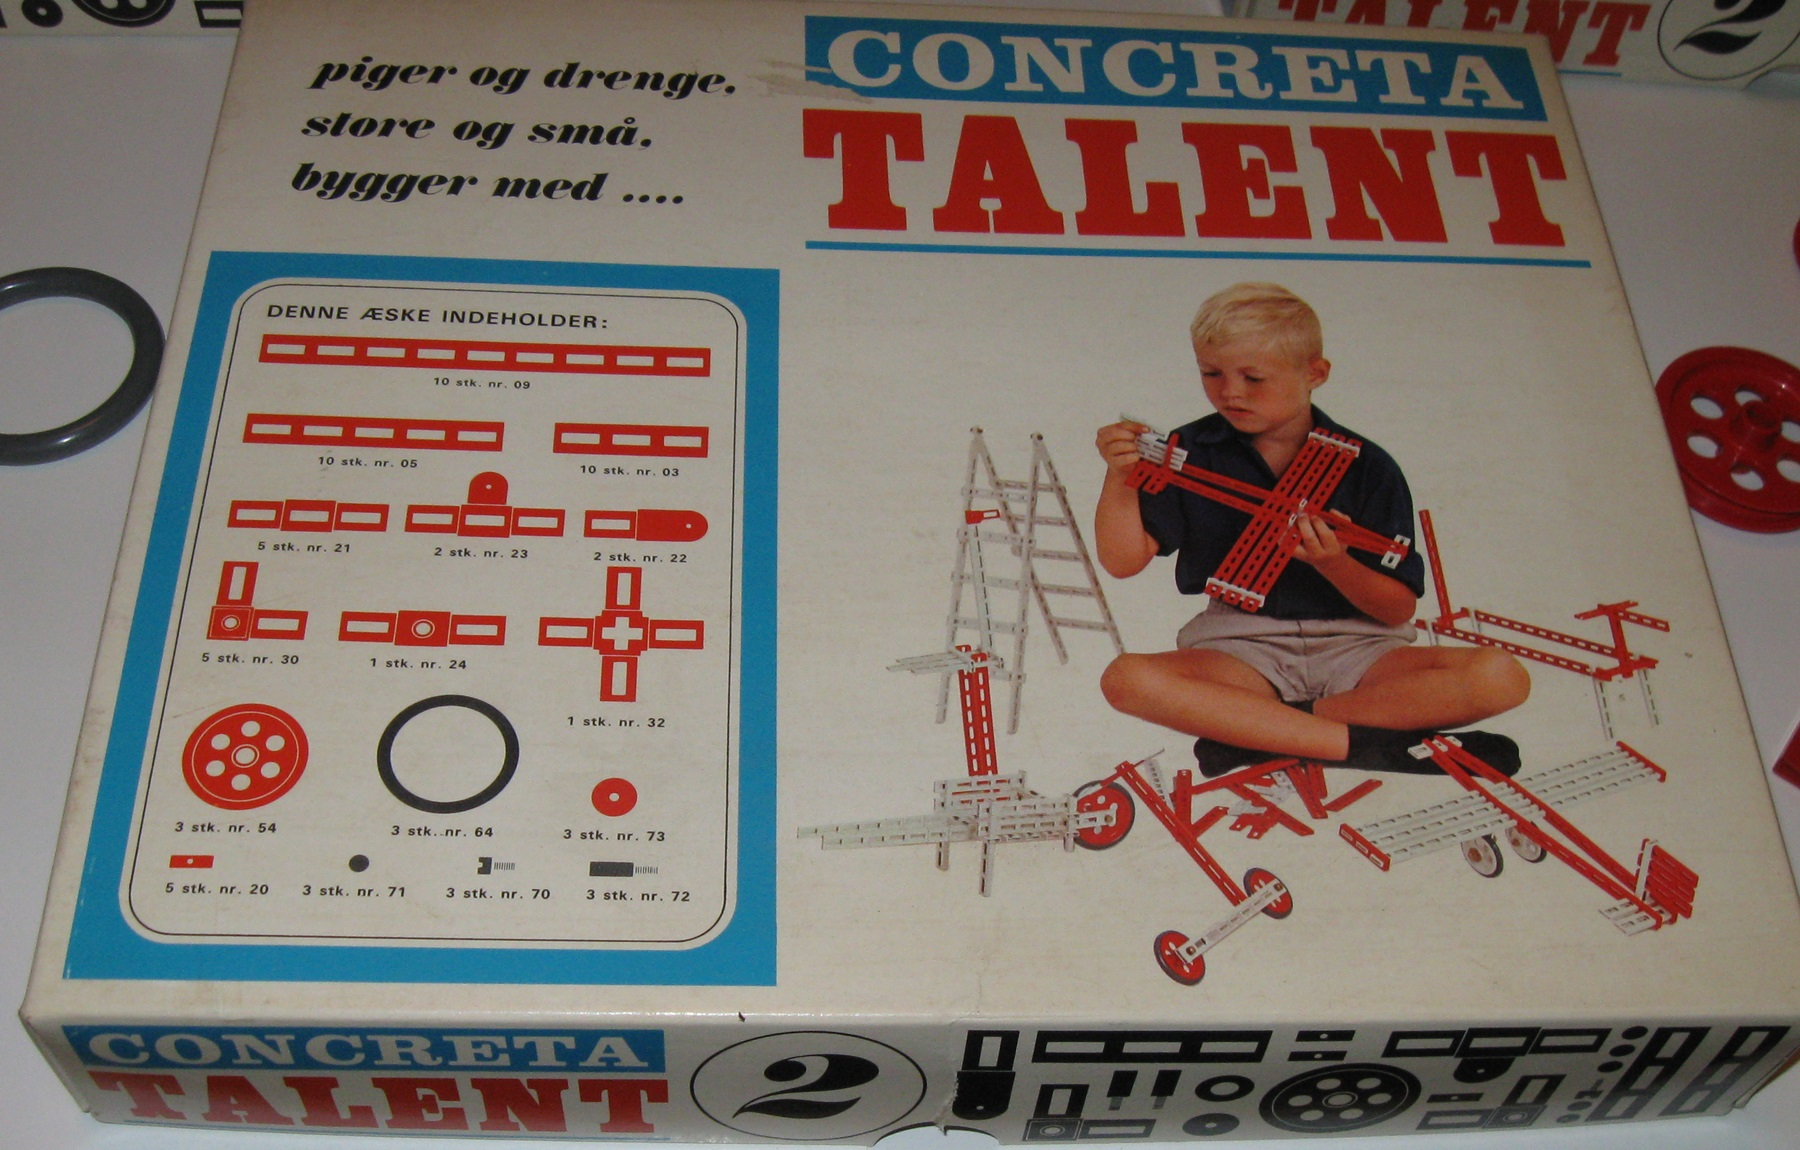 Concreta talent 2